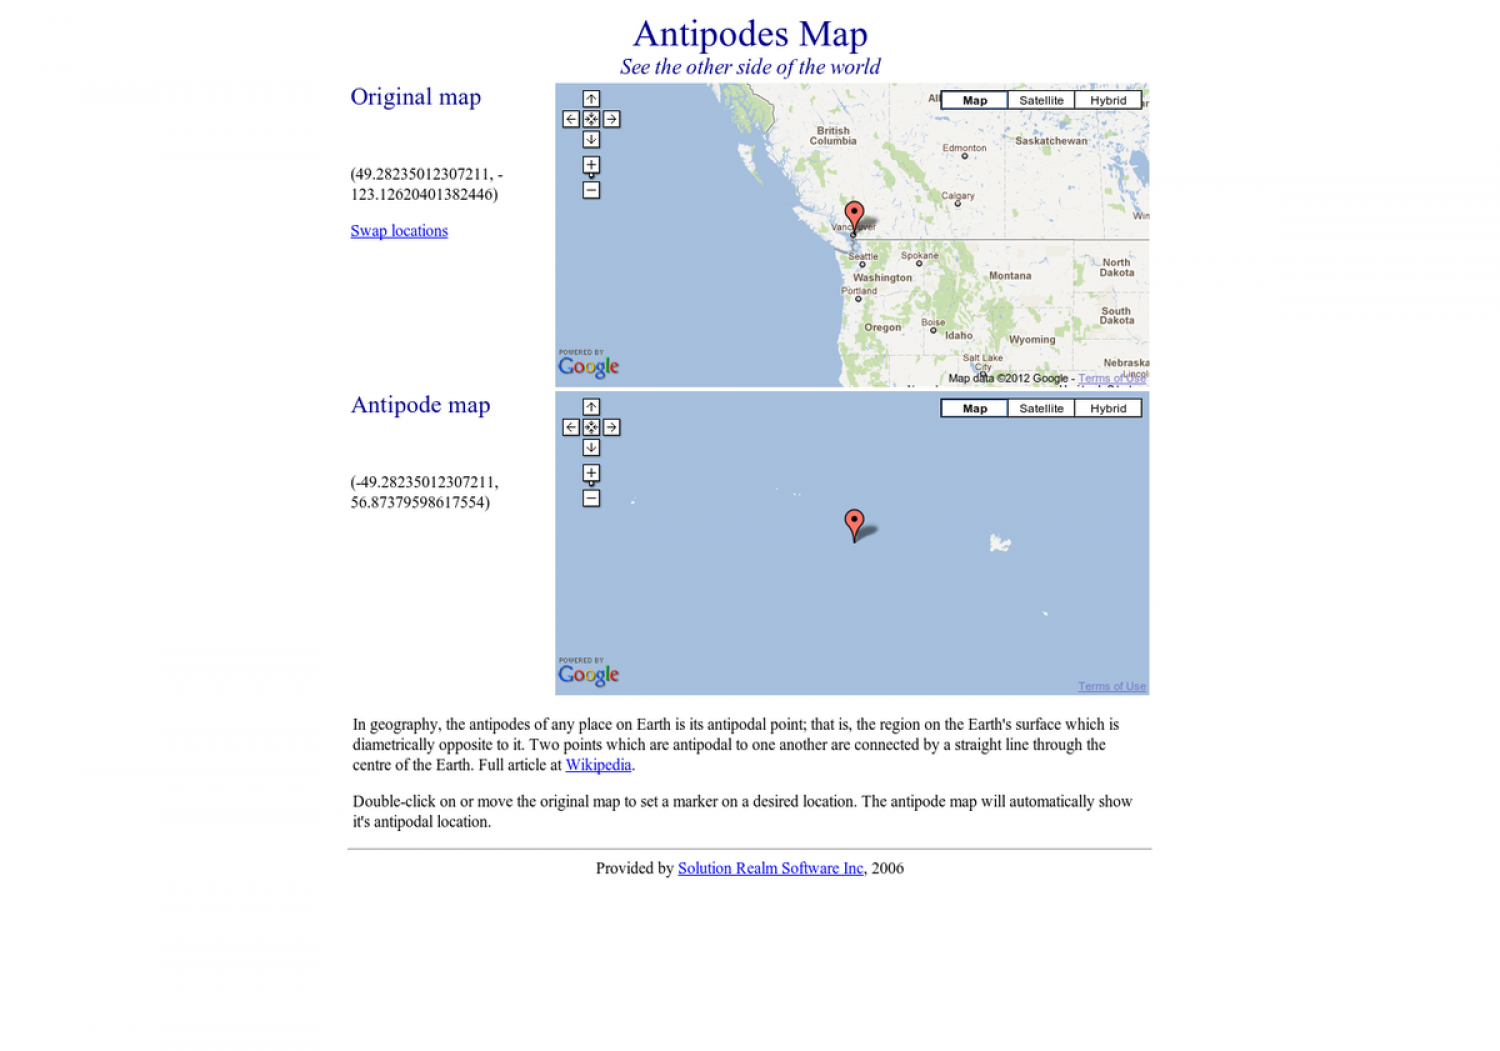 Antipodes Map Infographic